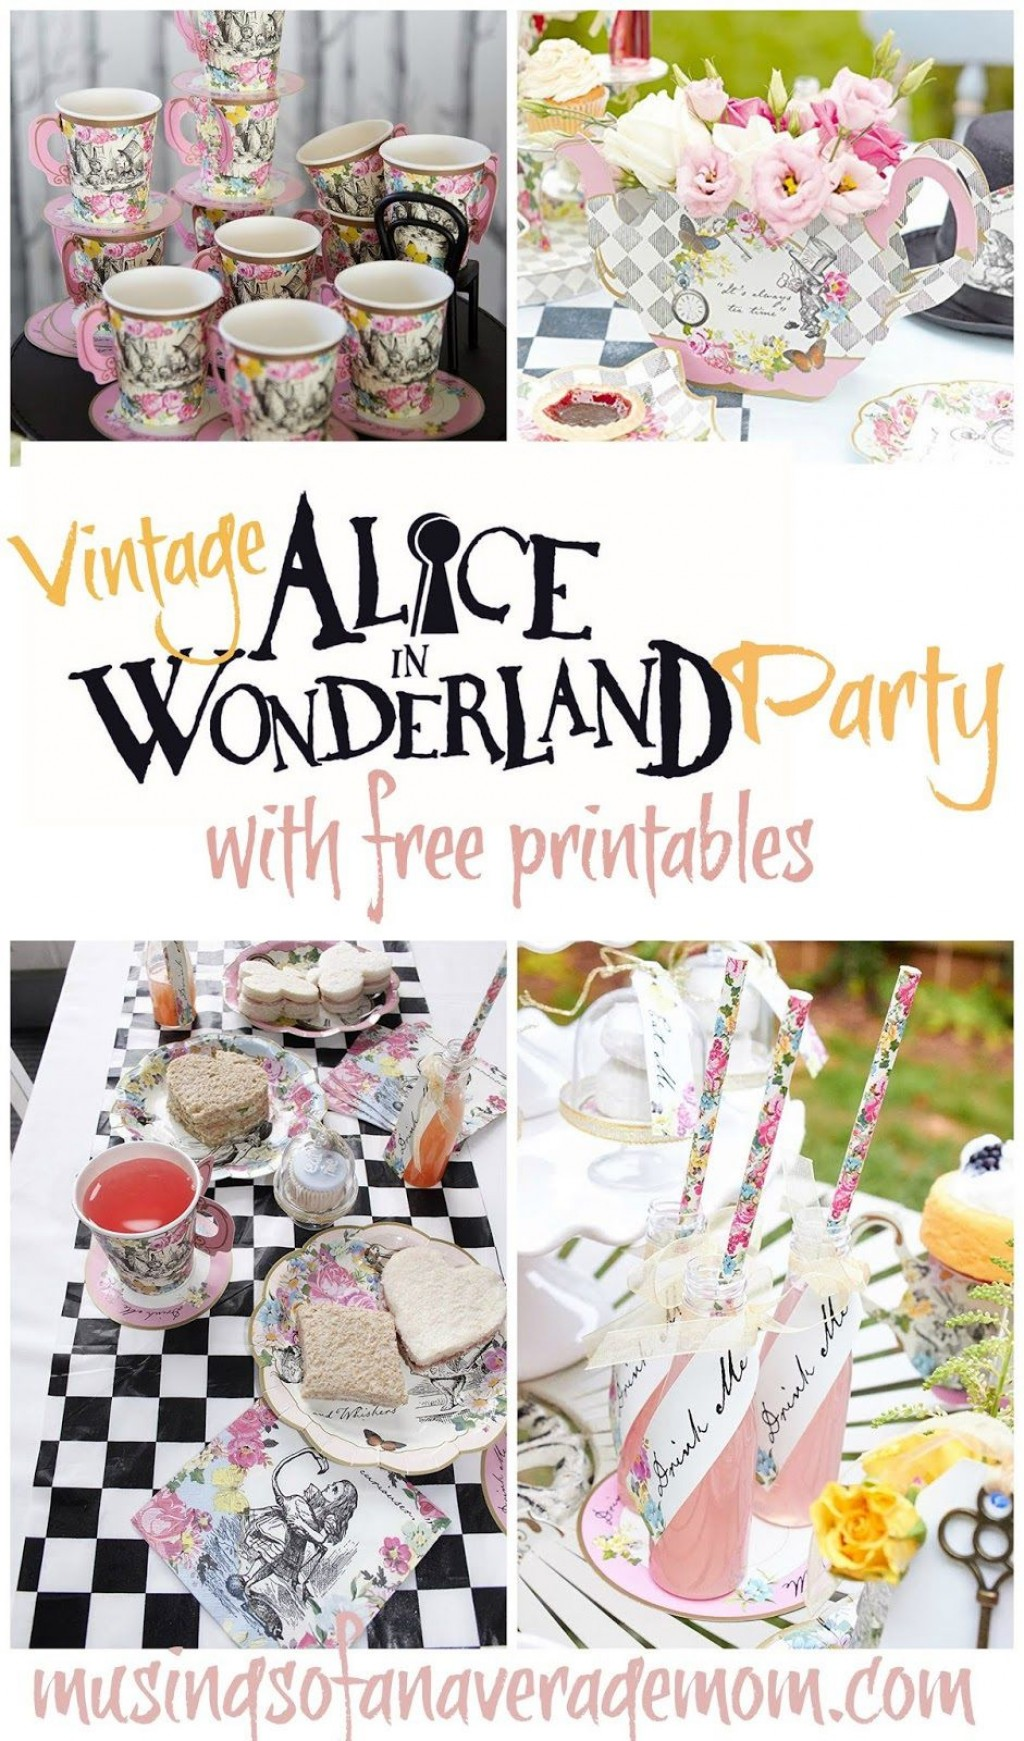 008 Wonderful Alice In Wonderland Party Template Picture  Templates Invitation FreeLarge